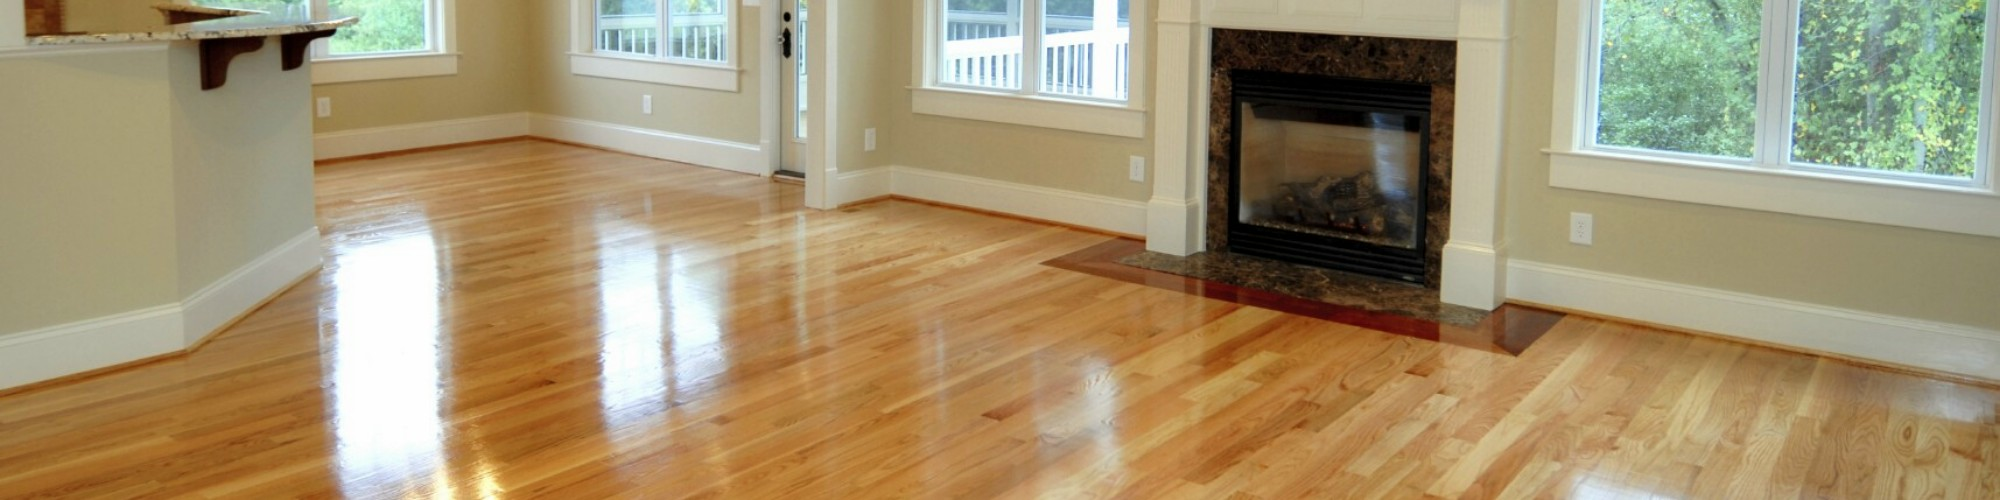 Wood Floor Resurfacing System